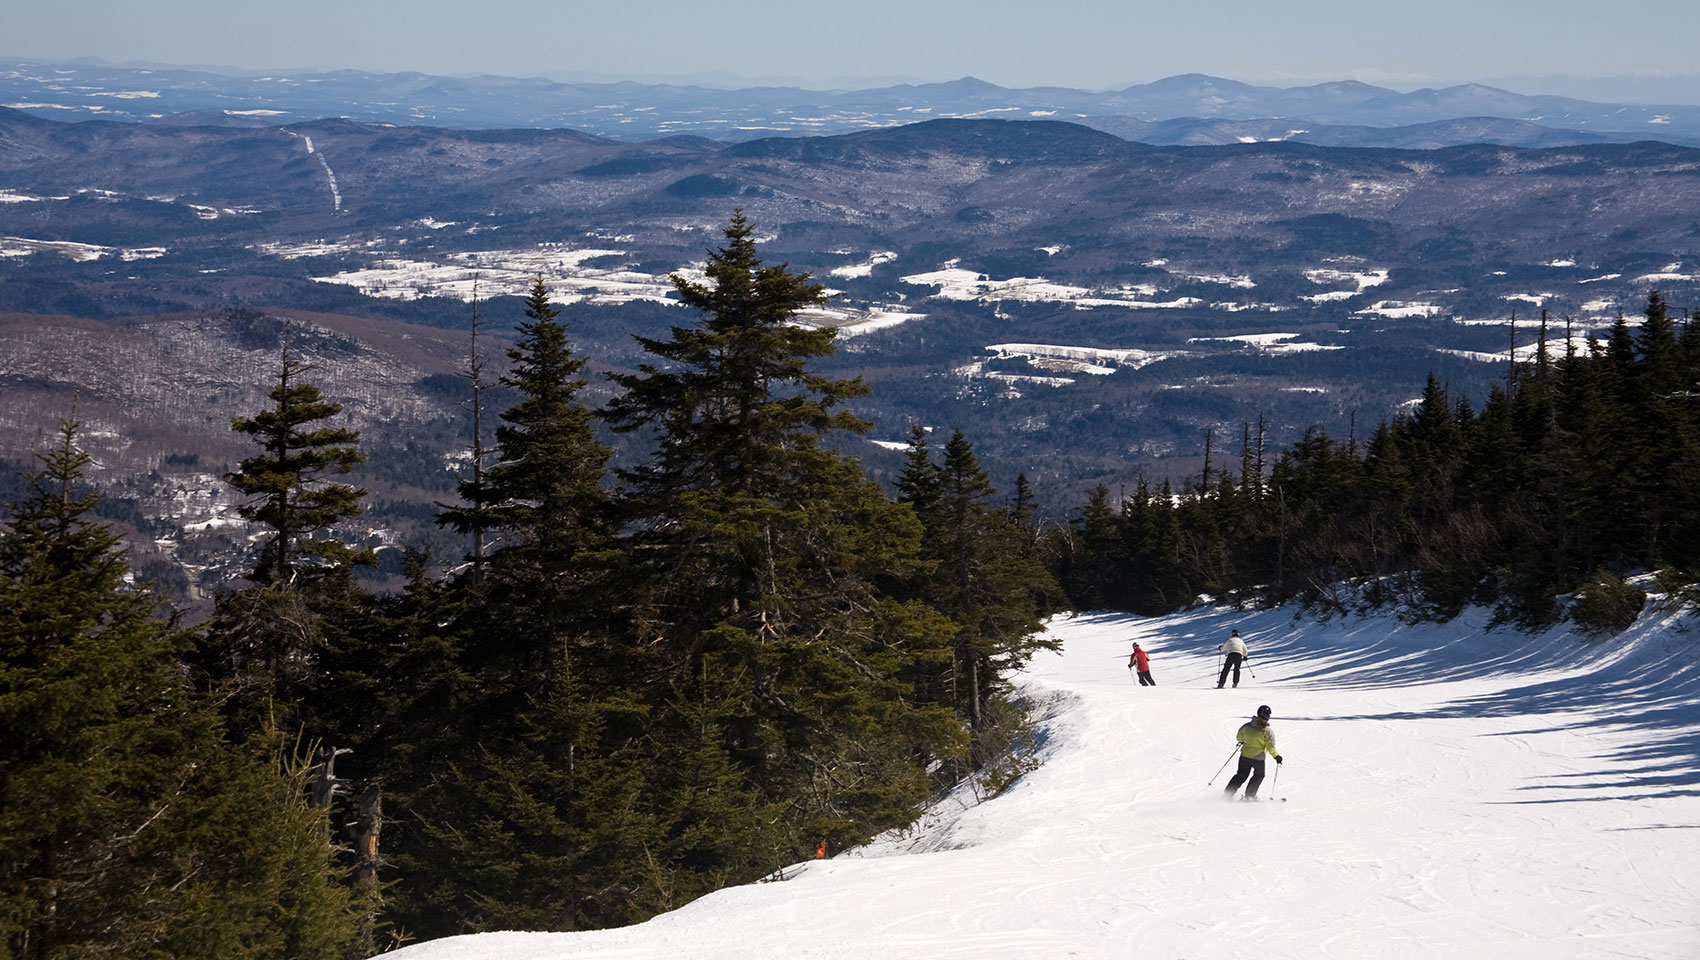 skiers going down a slope with more mountains in the background